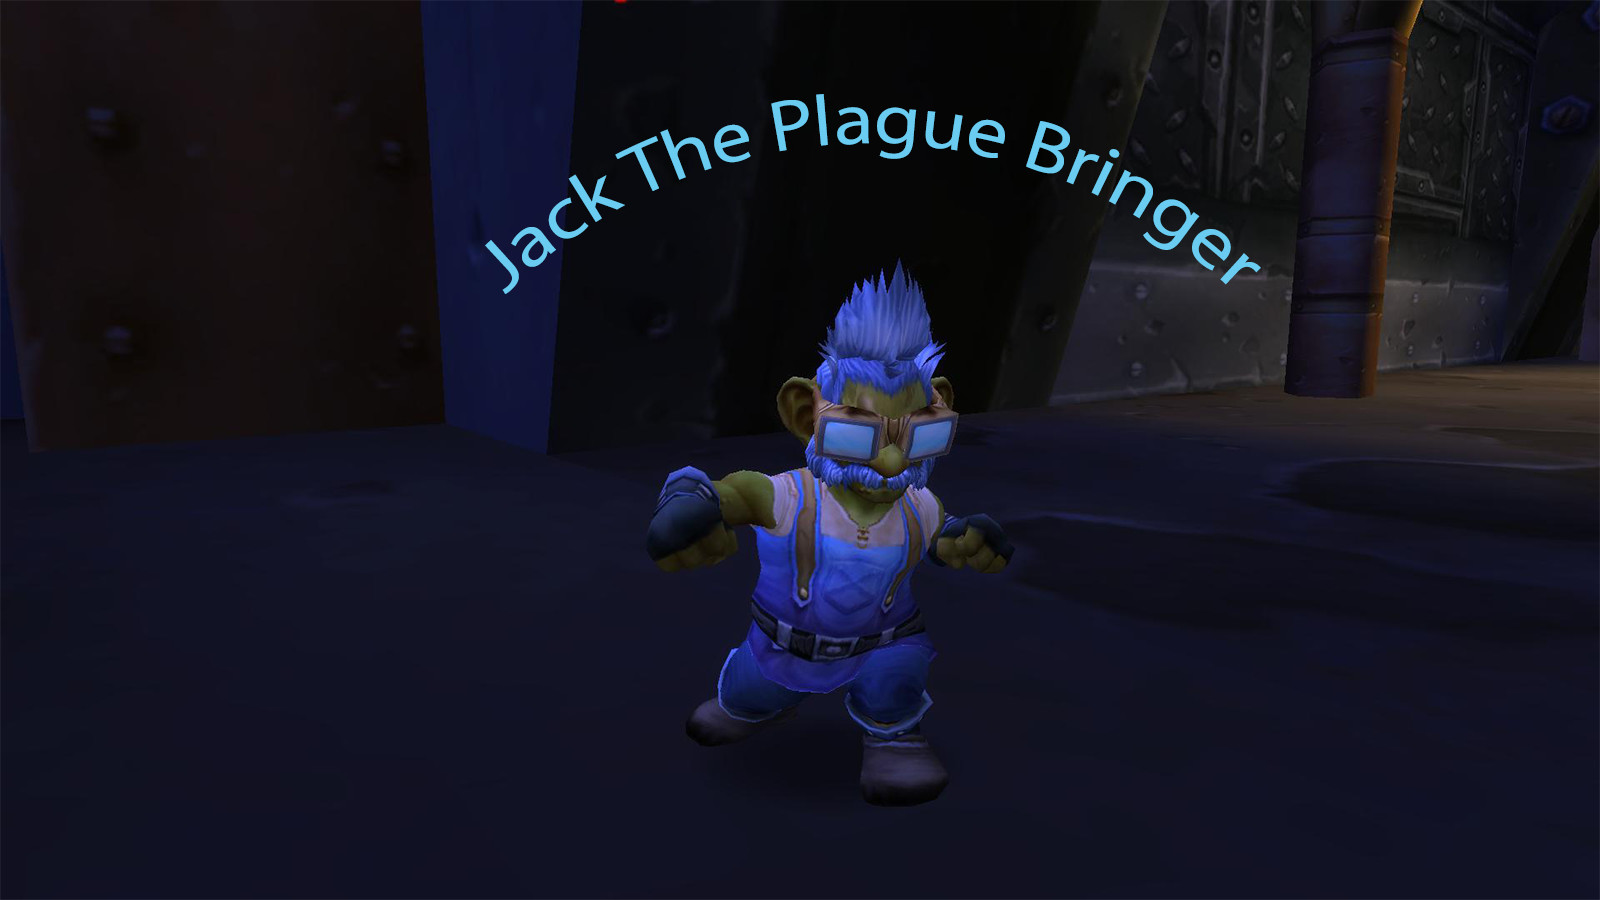 Jack The PlagueBringer